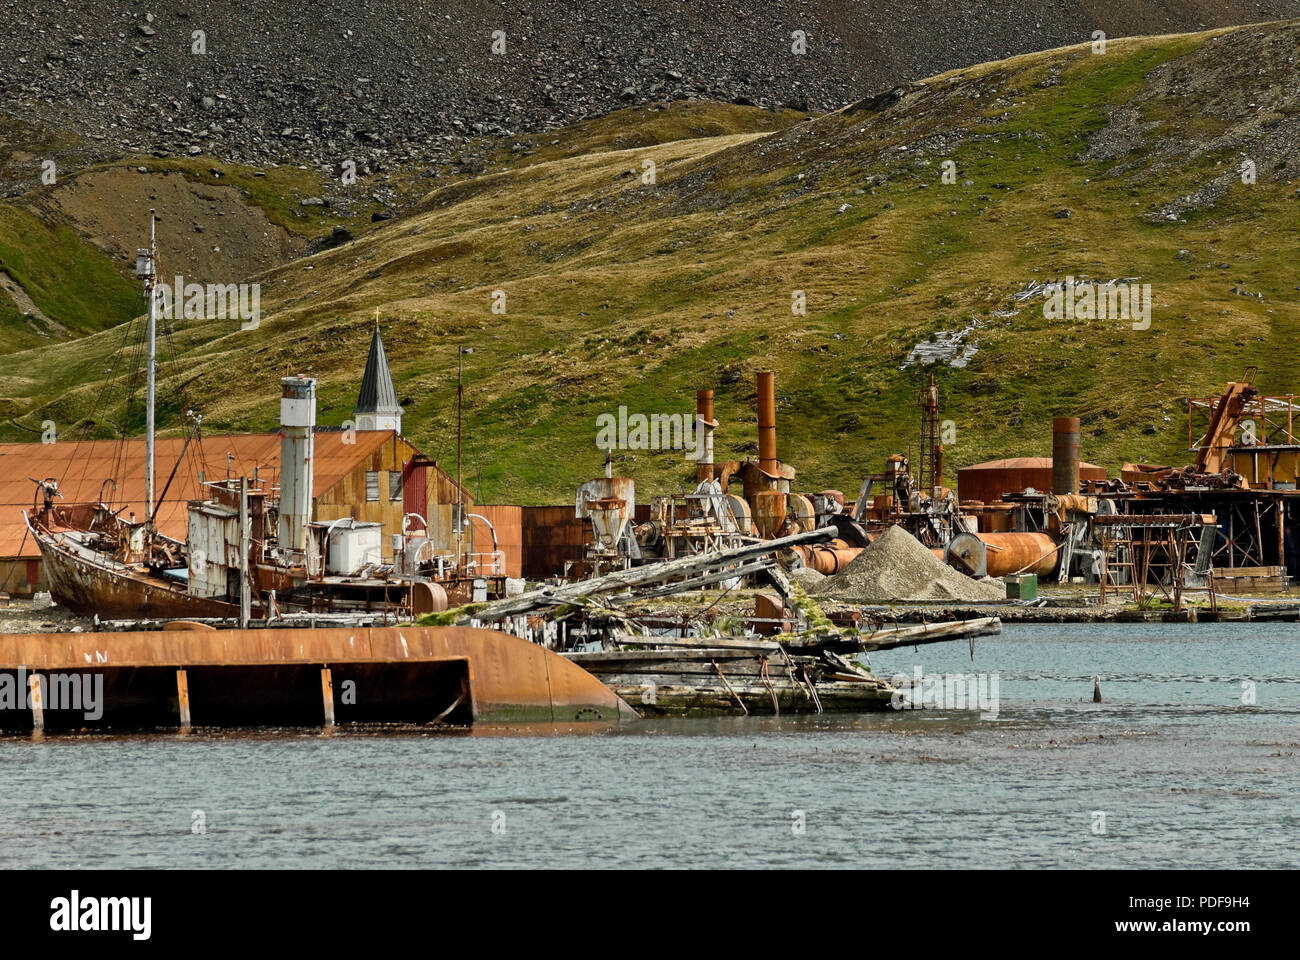 Derelict and decaying whaling ship Petrep in Grytviken harbour, South Georgia, Antartica. - Stock Image